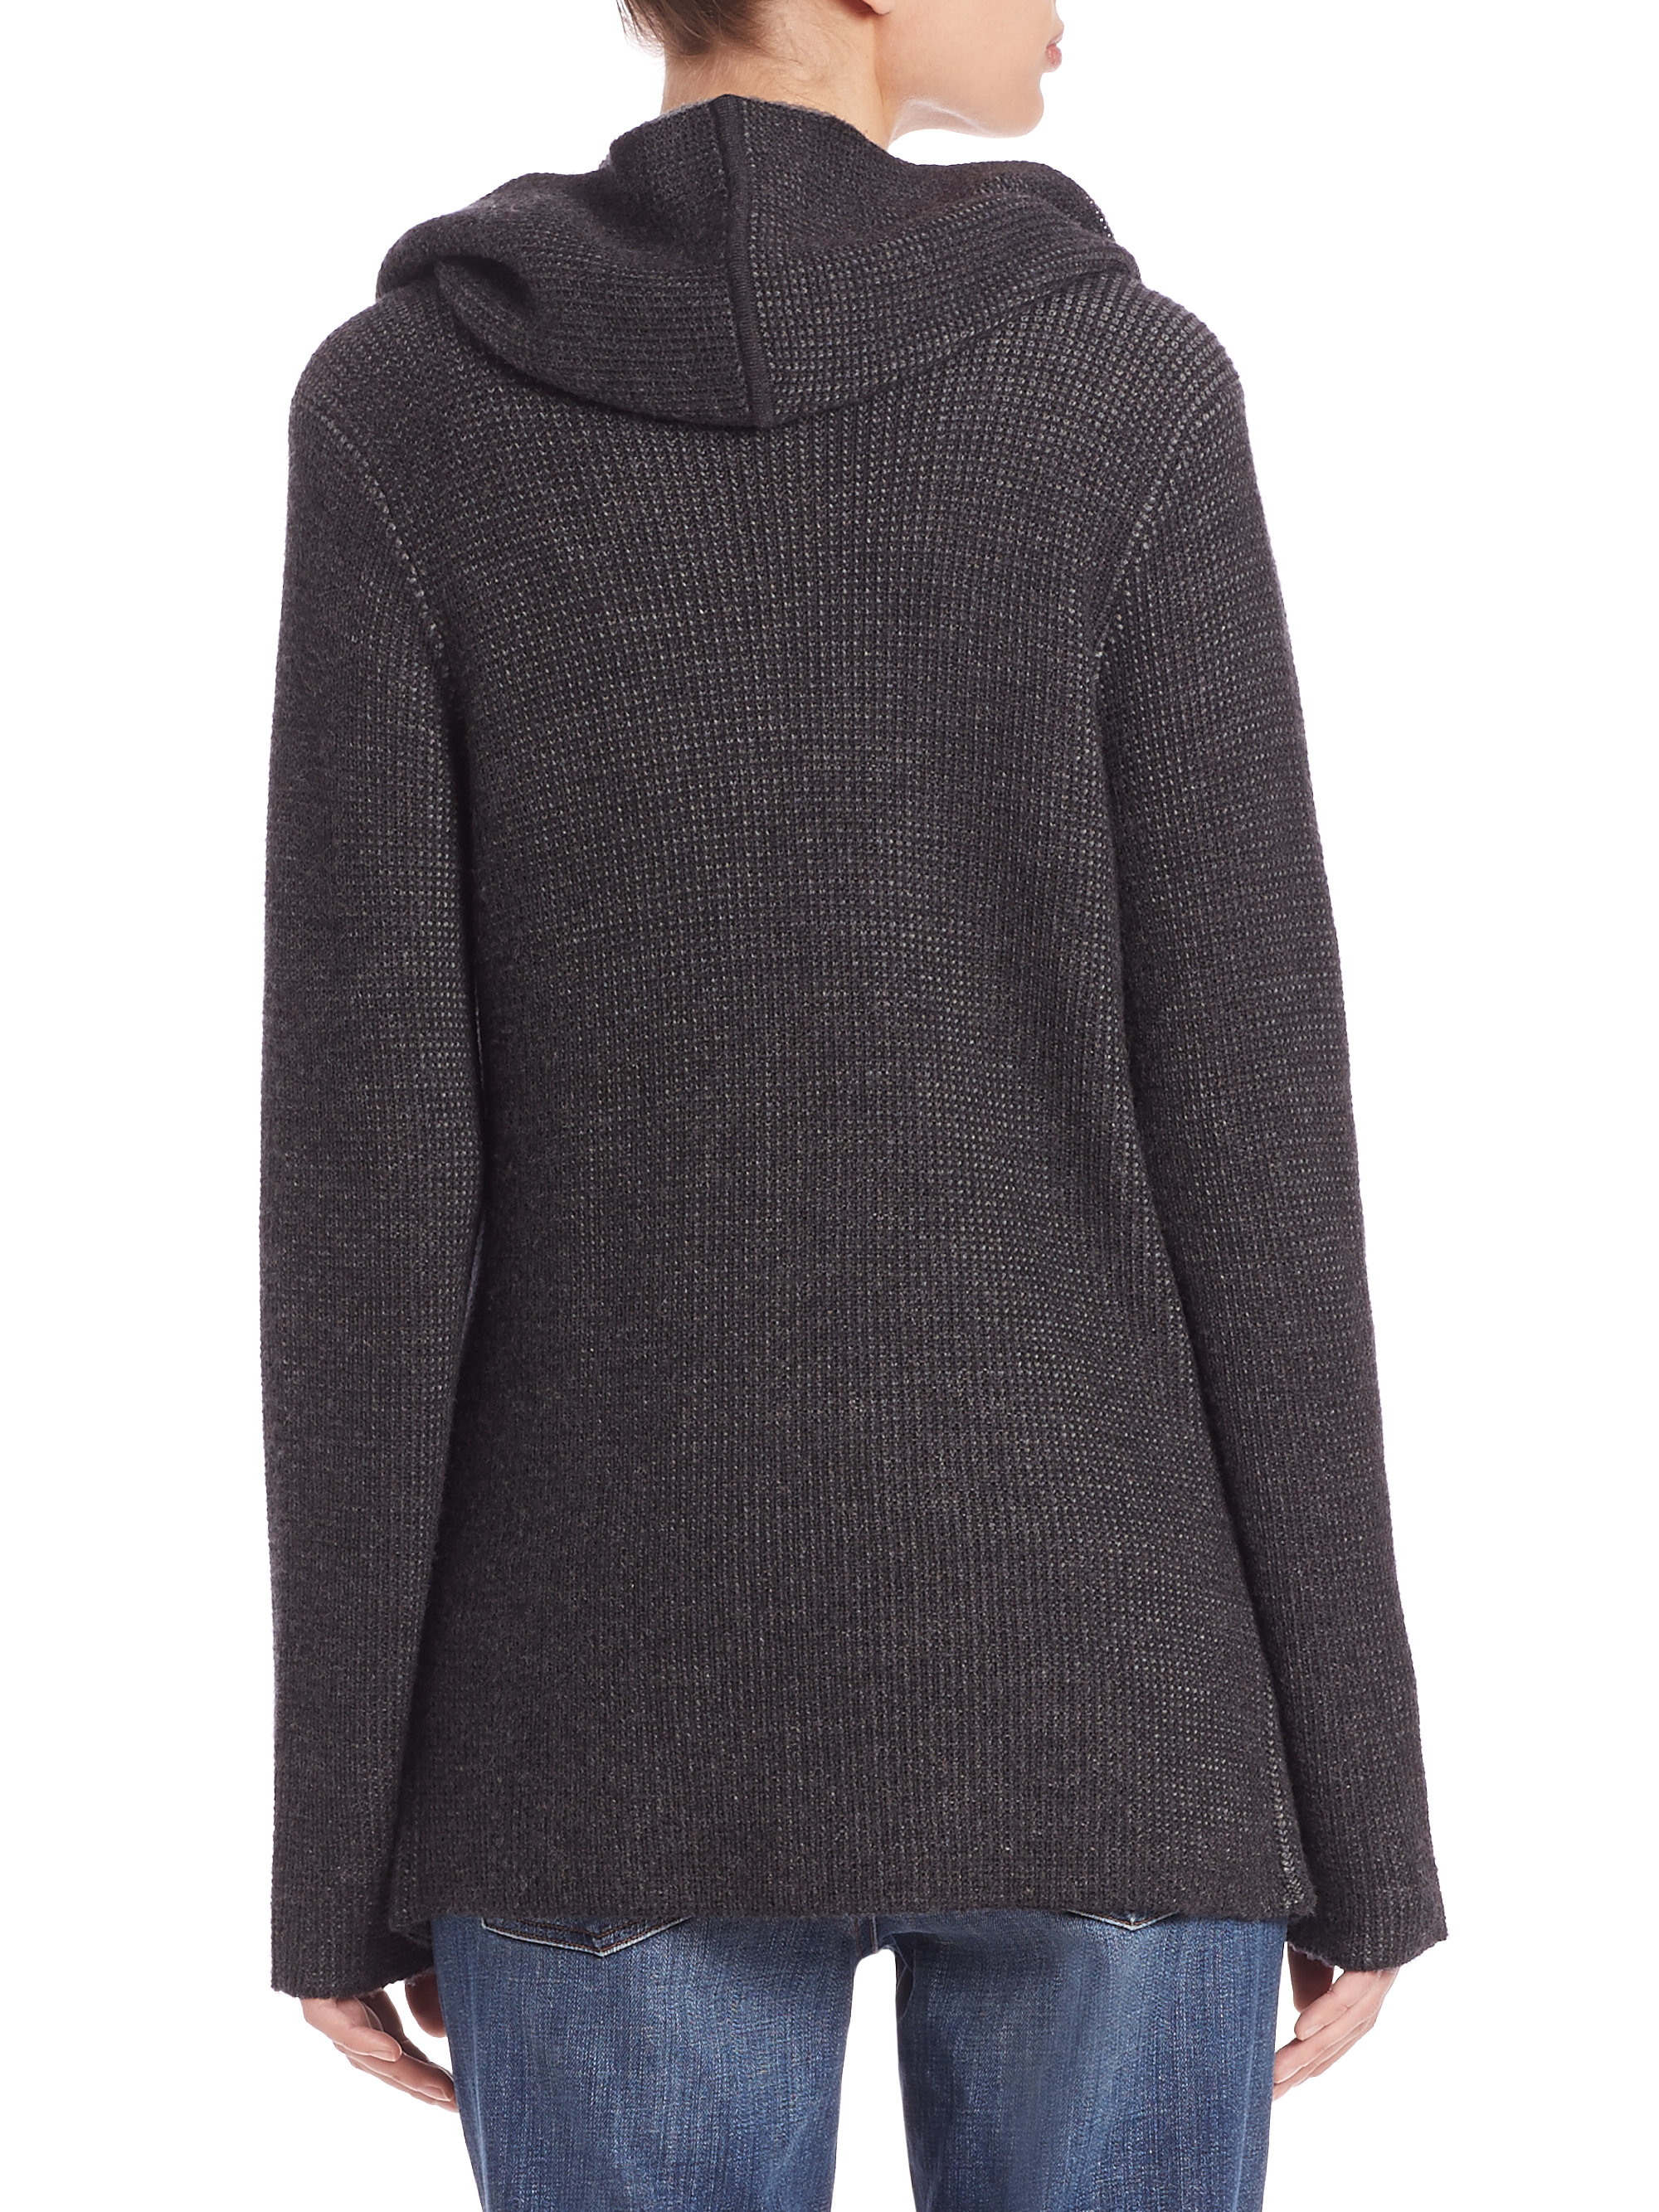 Eileen fisher Wool Hooded Cardigan in Gray | Lyst